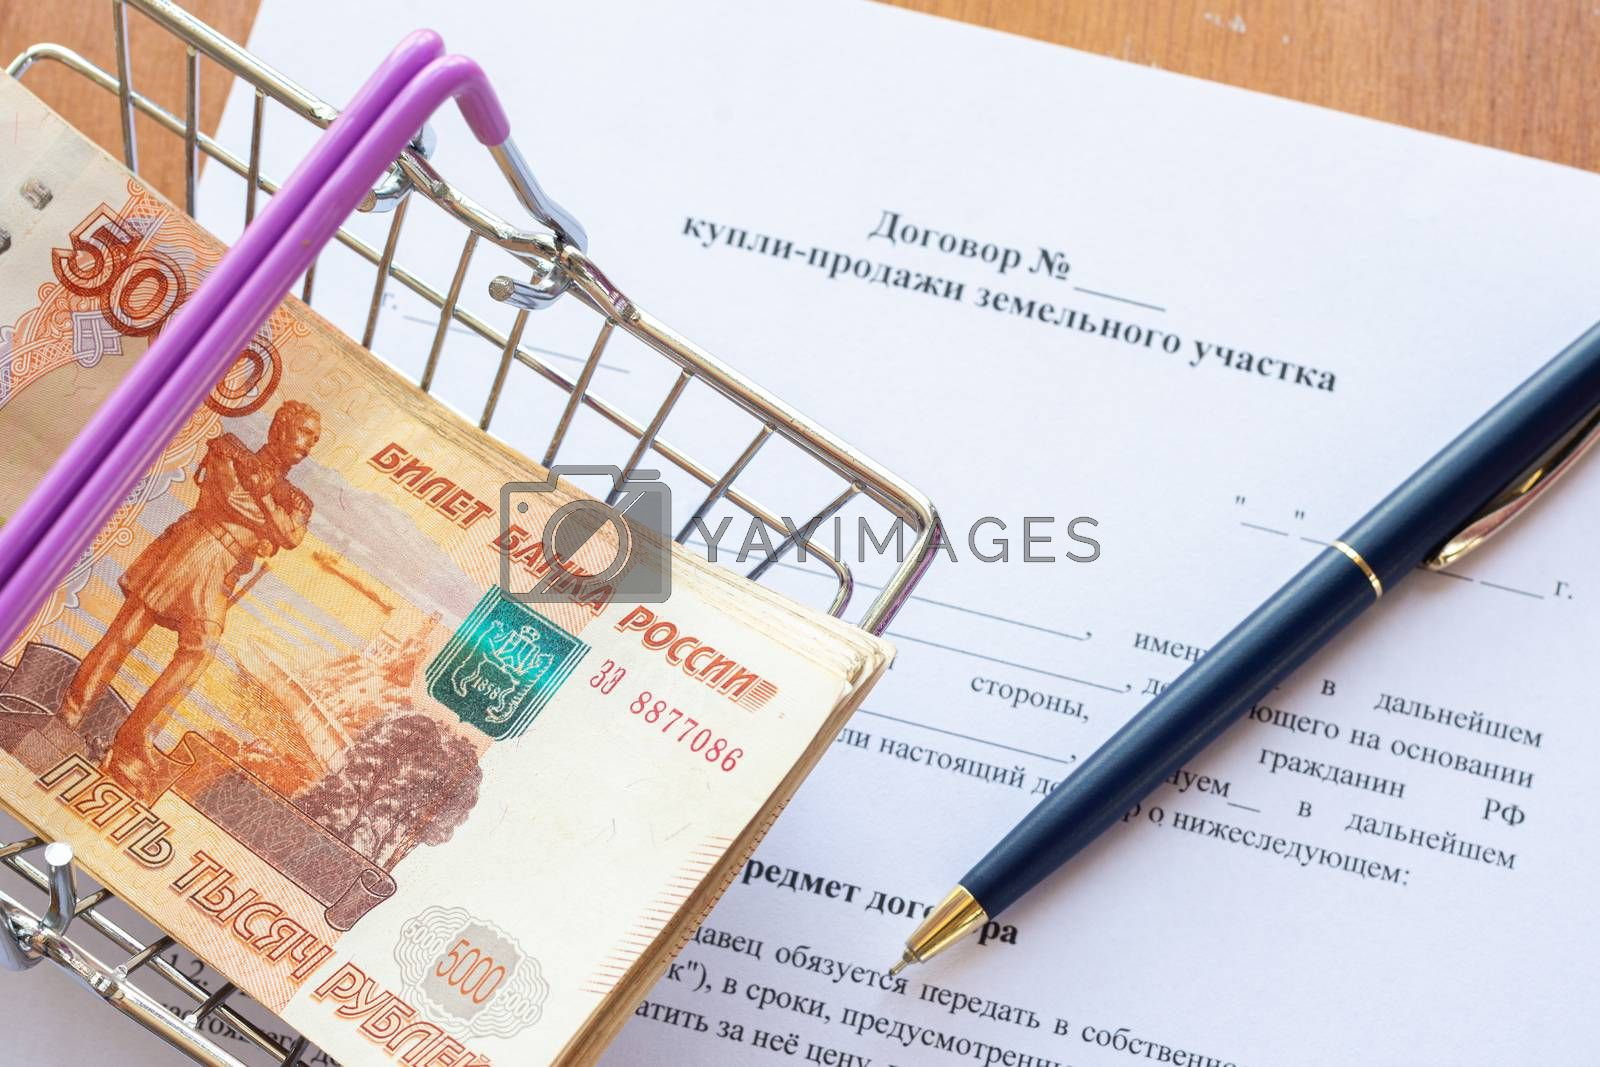 There is a bundle of money in a grocery basket and a ballpoint pen on the land purchase agreement